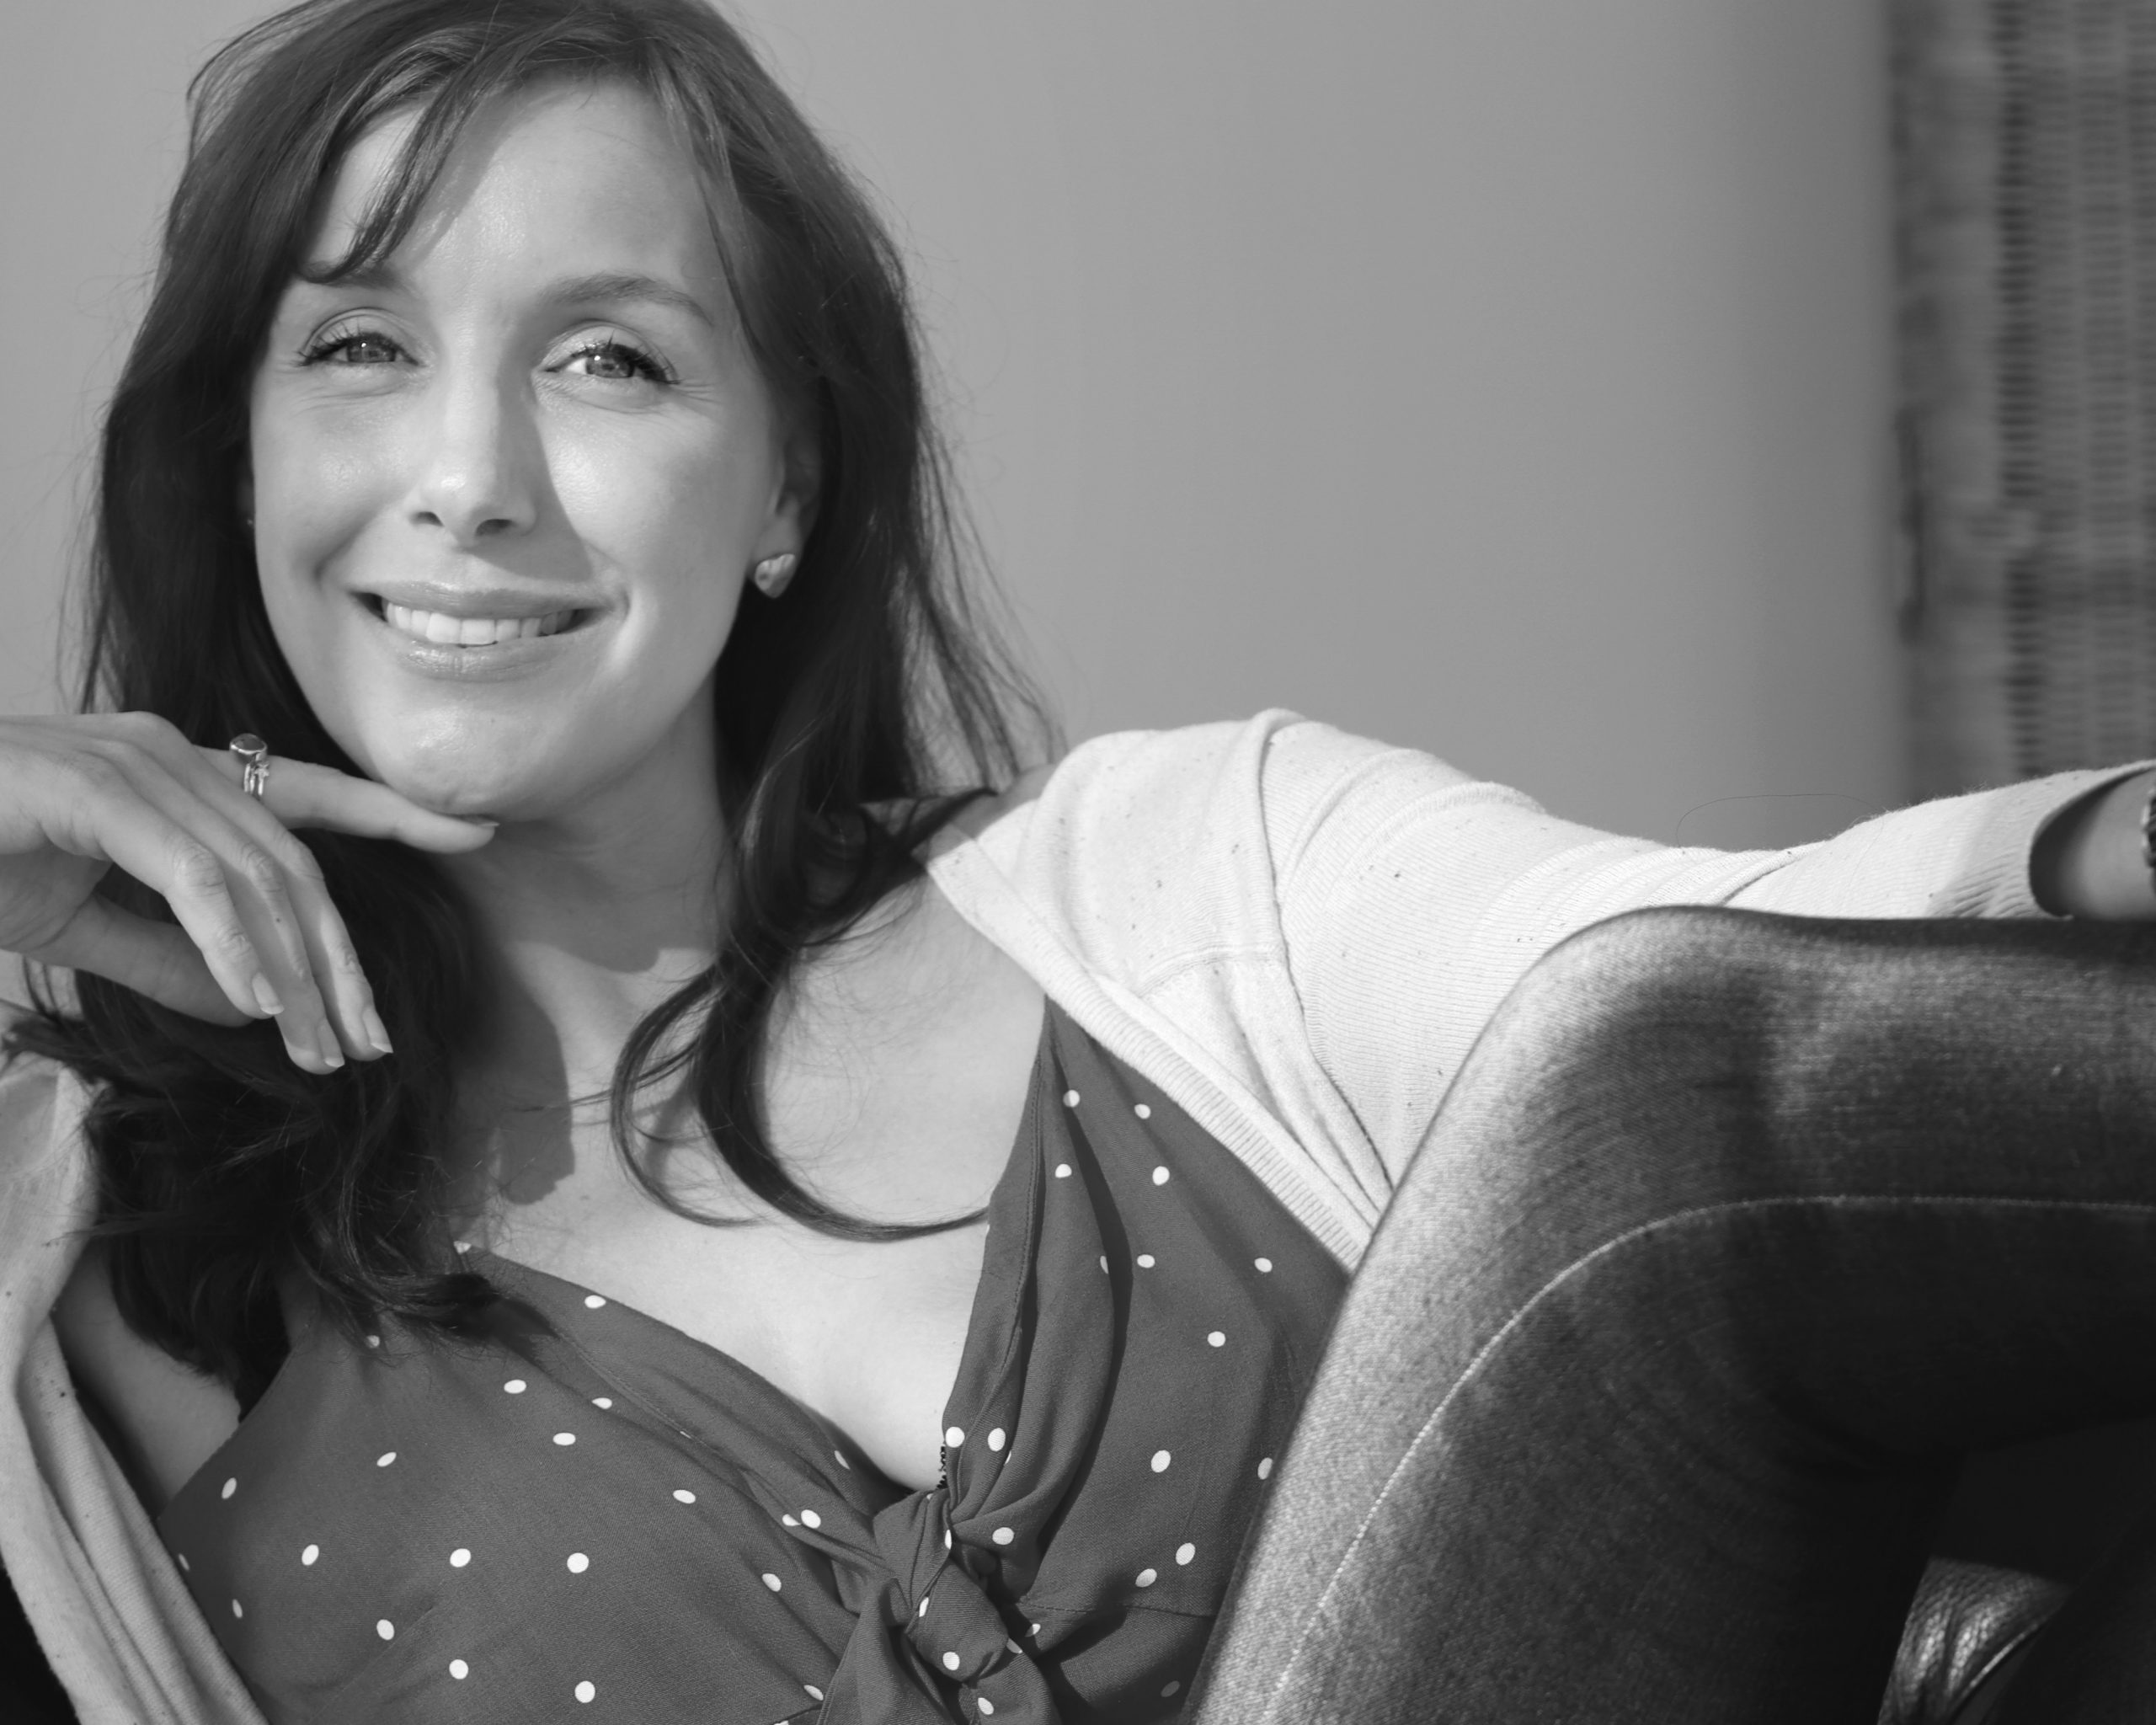 Amy's Chapter, welcome to my blog - Amy sits smiling at the camera. She is wearing a polka dot top and a white cardio and jeans. The image is in black and white.